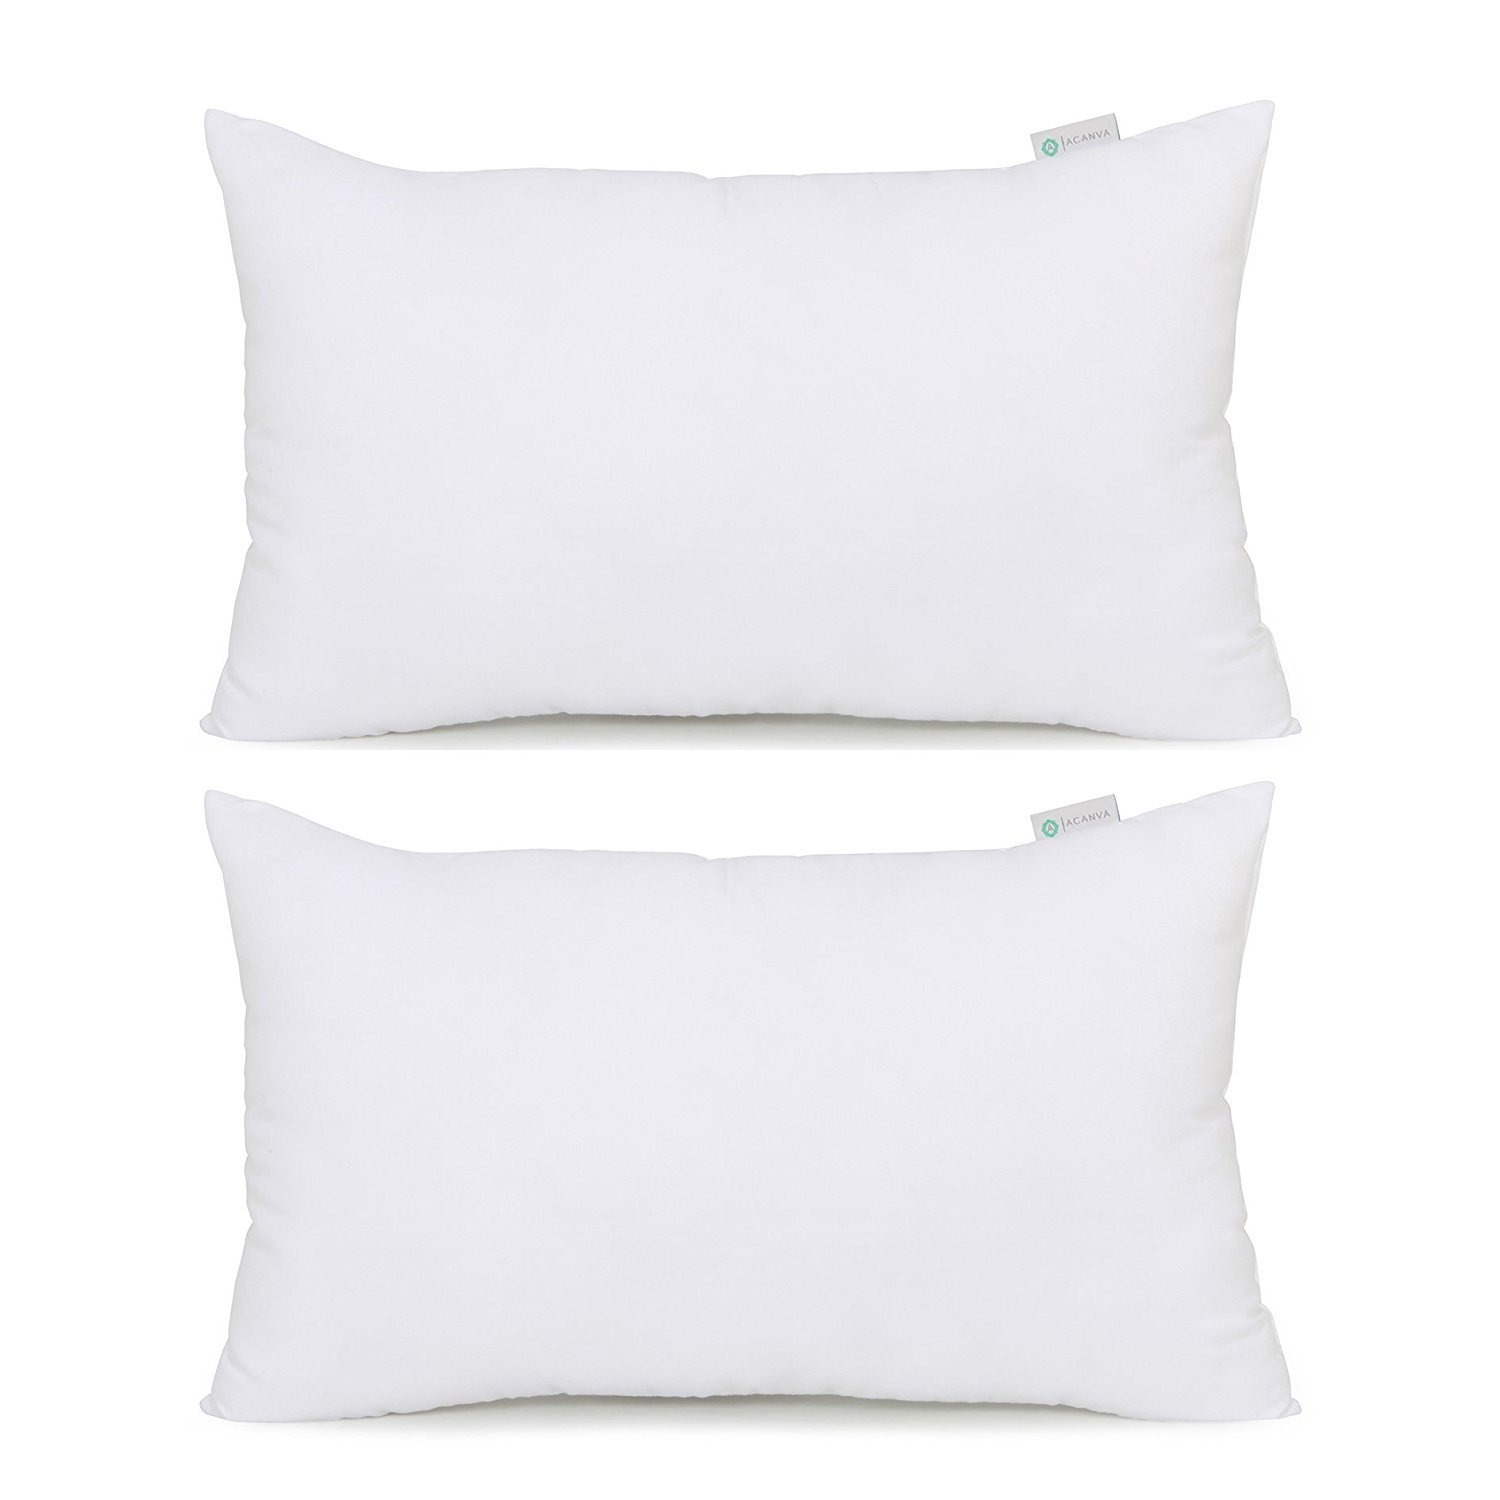 Acanva Hypoallergenic Pillow Insert Form Cushion Sham, Oblong Rectangle, 16'' L x 26'' W, Set of 2 by Acanva